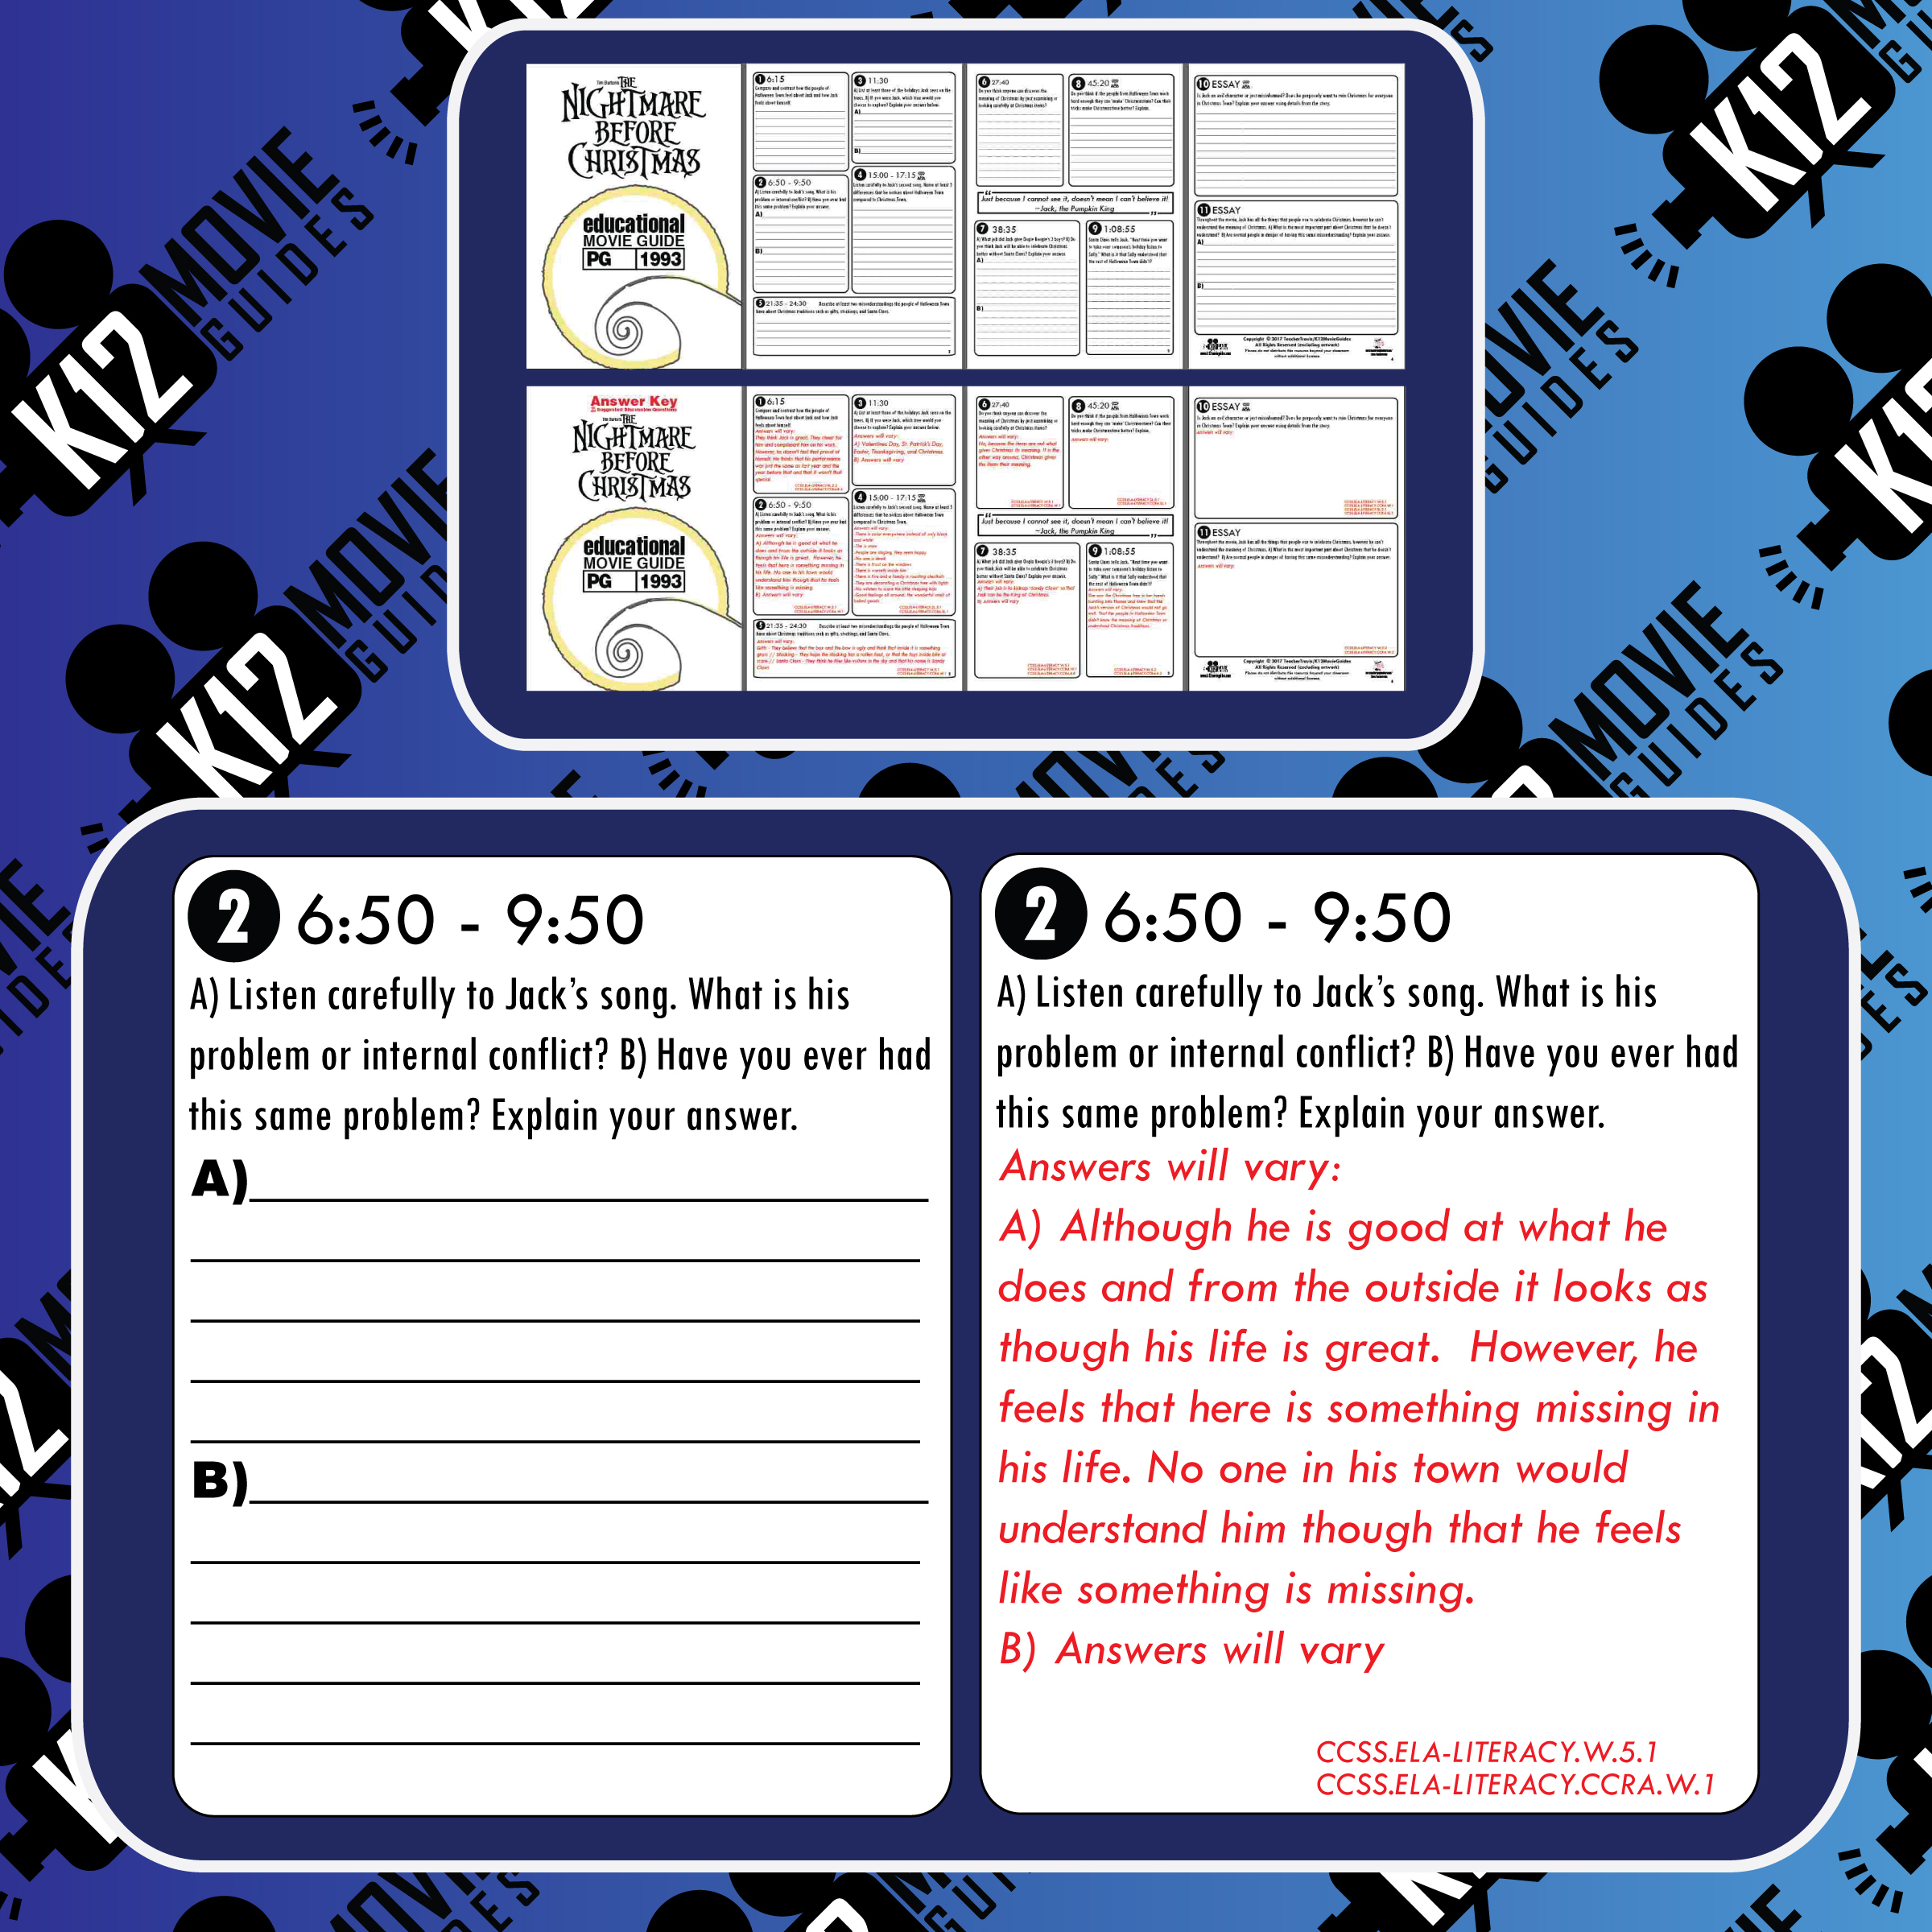 The Nightmare Before Christmas Movie Guide | Questions | Worksheet (PG - 1993) Free Sample